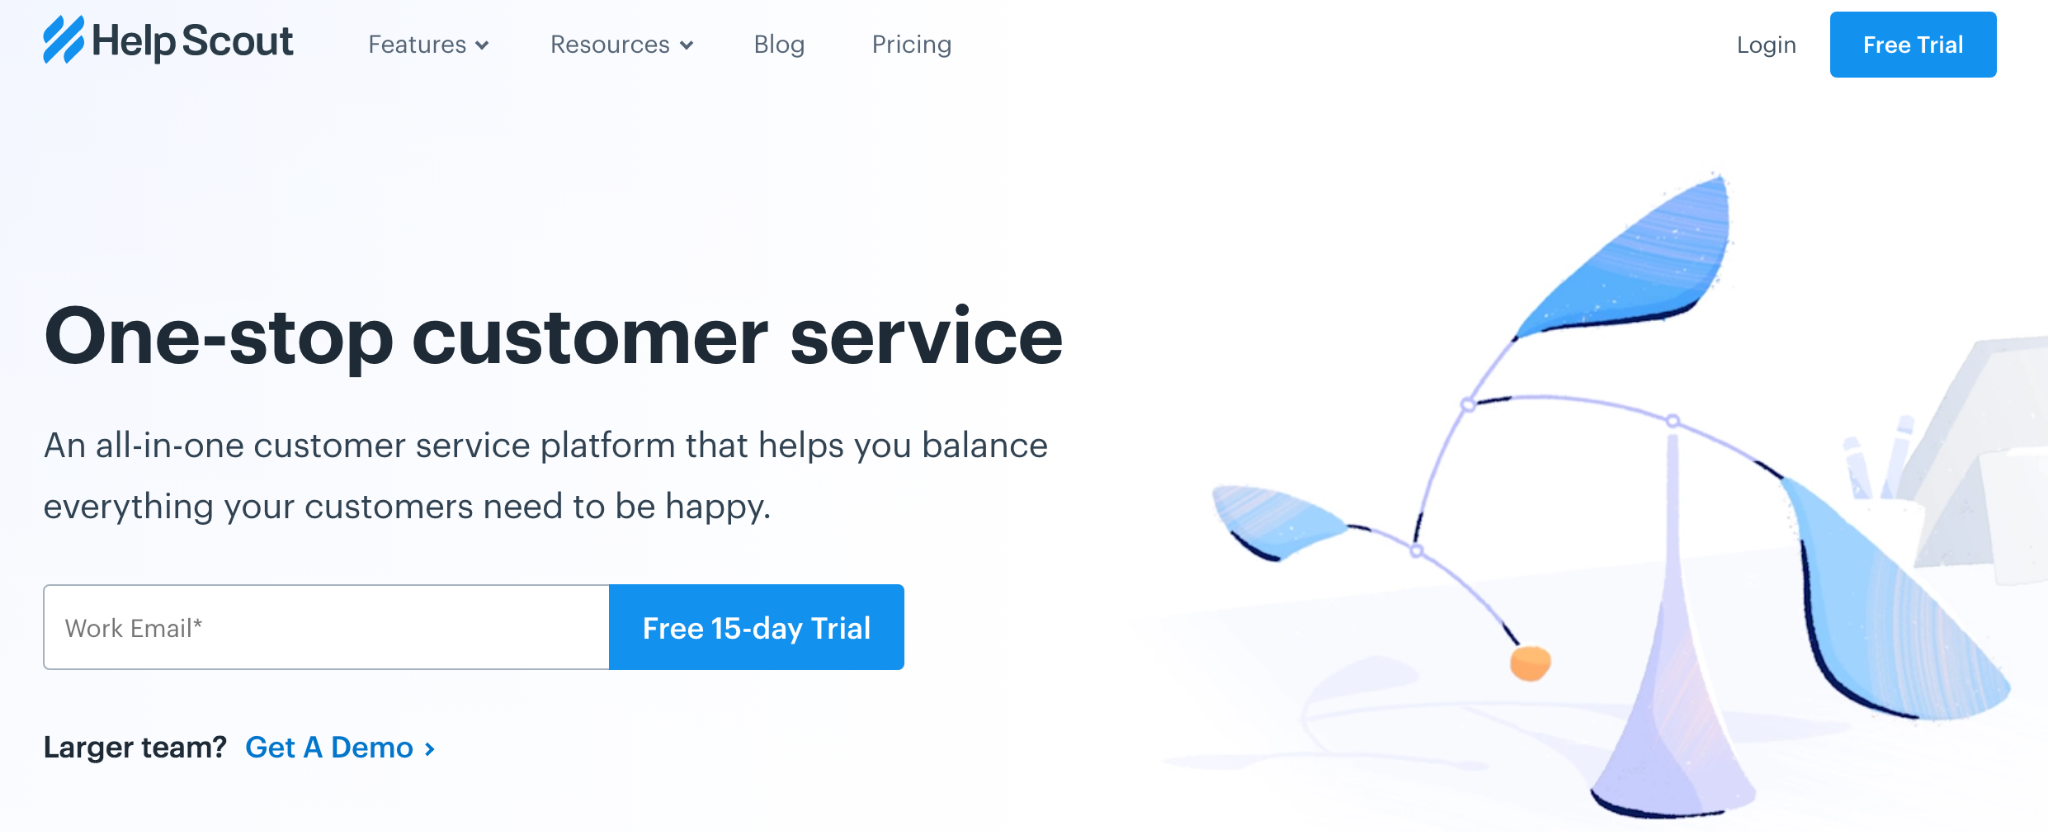 Help Scout homepage: One-Stop Customer Service